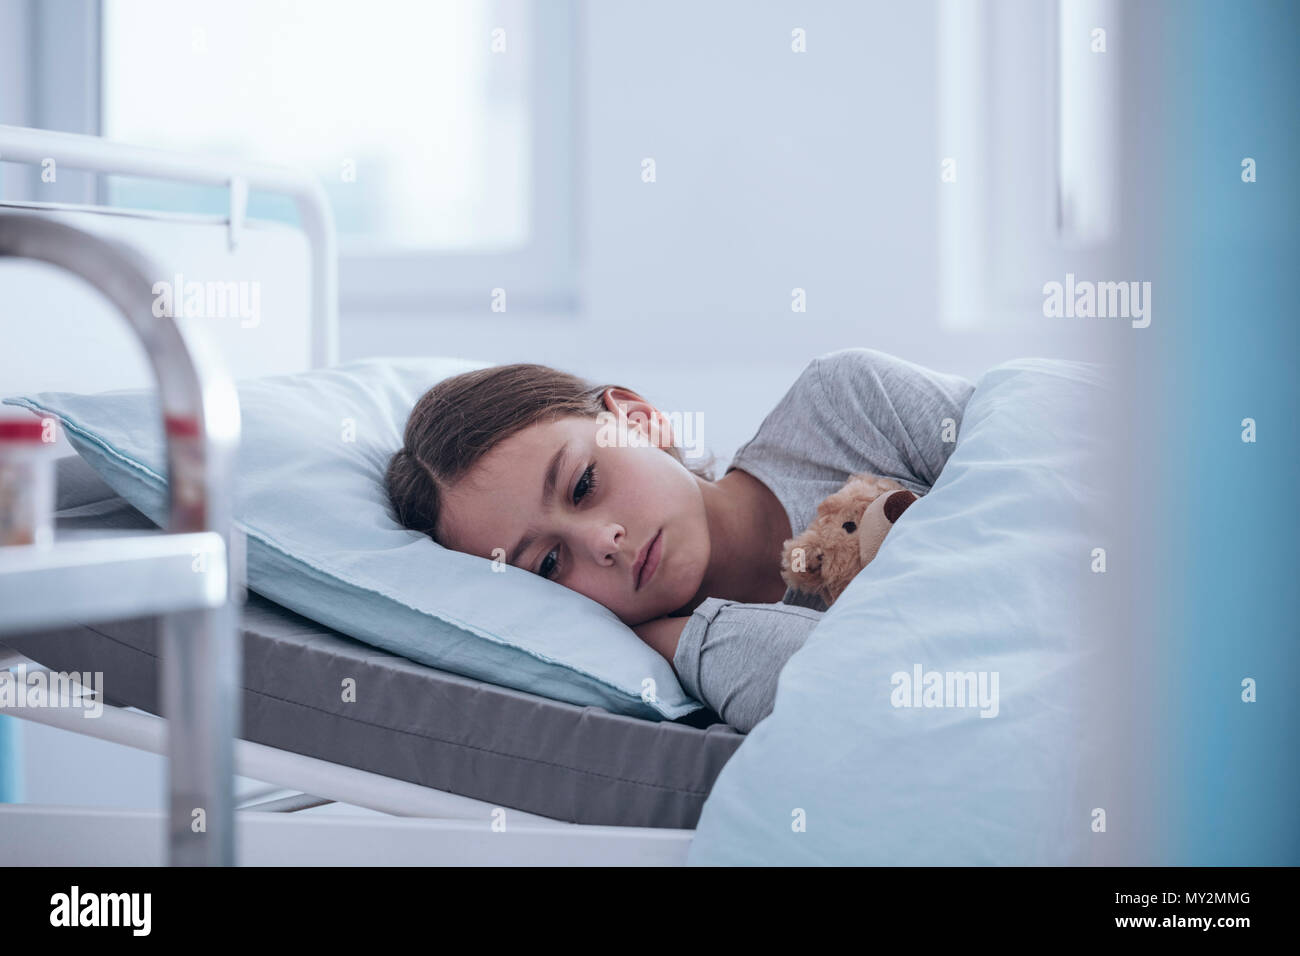 Sad and weak girl lying alone in the hospital bed